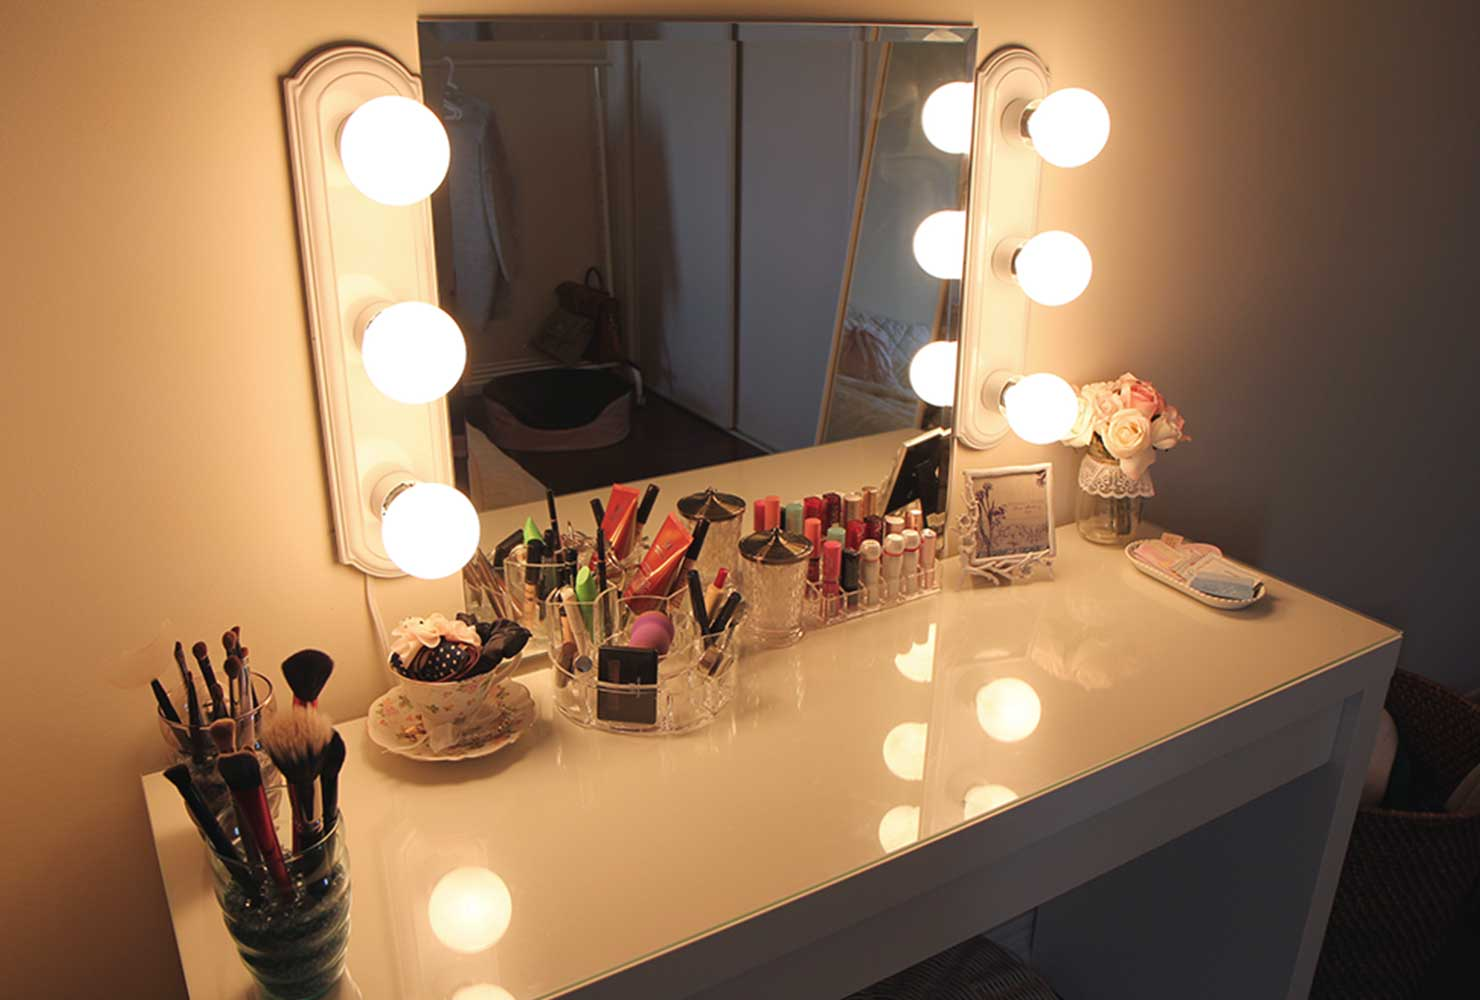 35 Makeup Room Ideas To Brighten Your Morning Routine ... on Makeup Room Ideas  id=68117